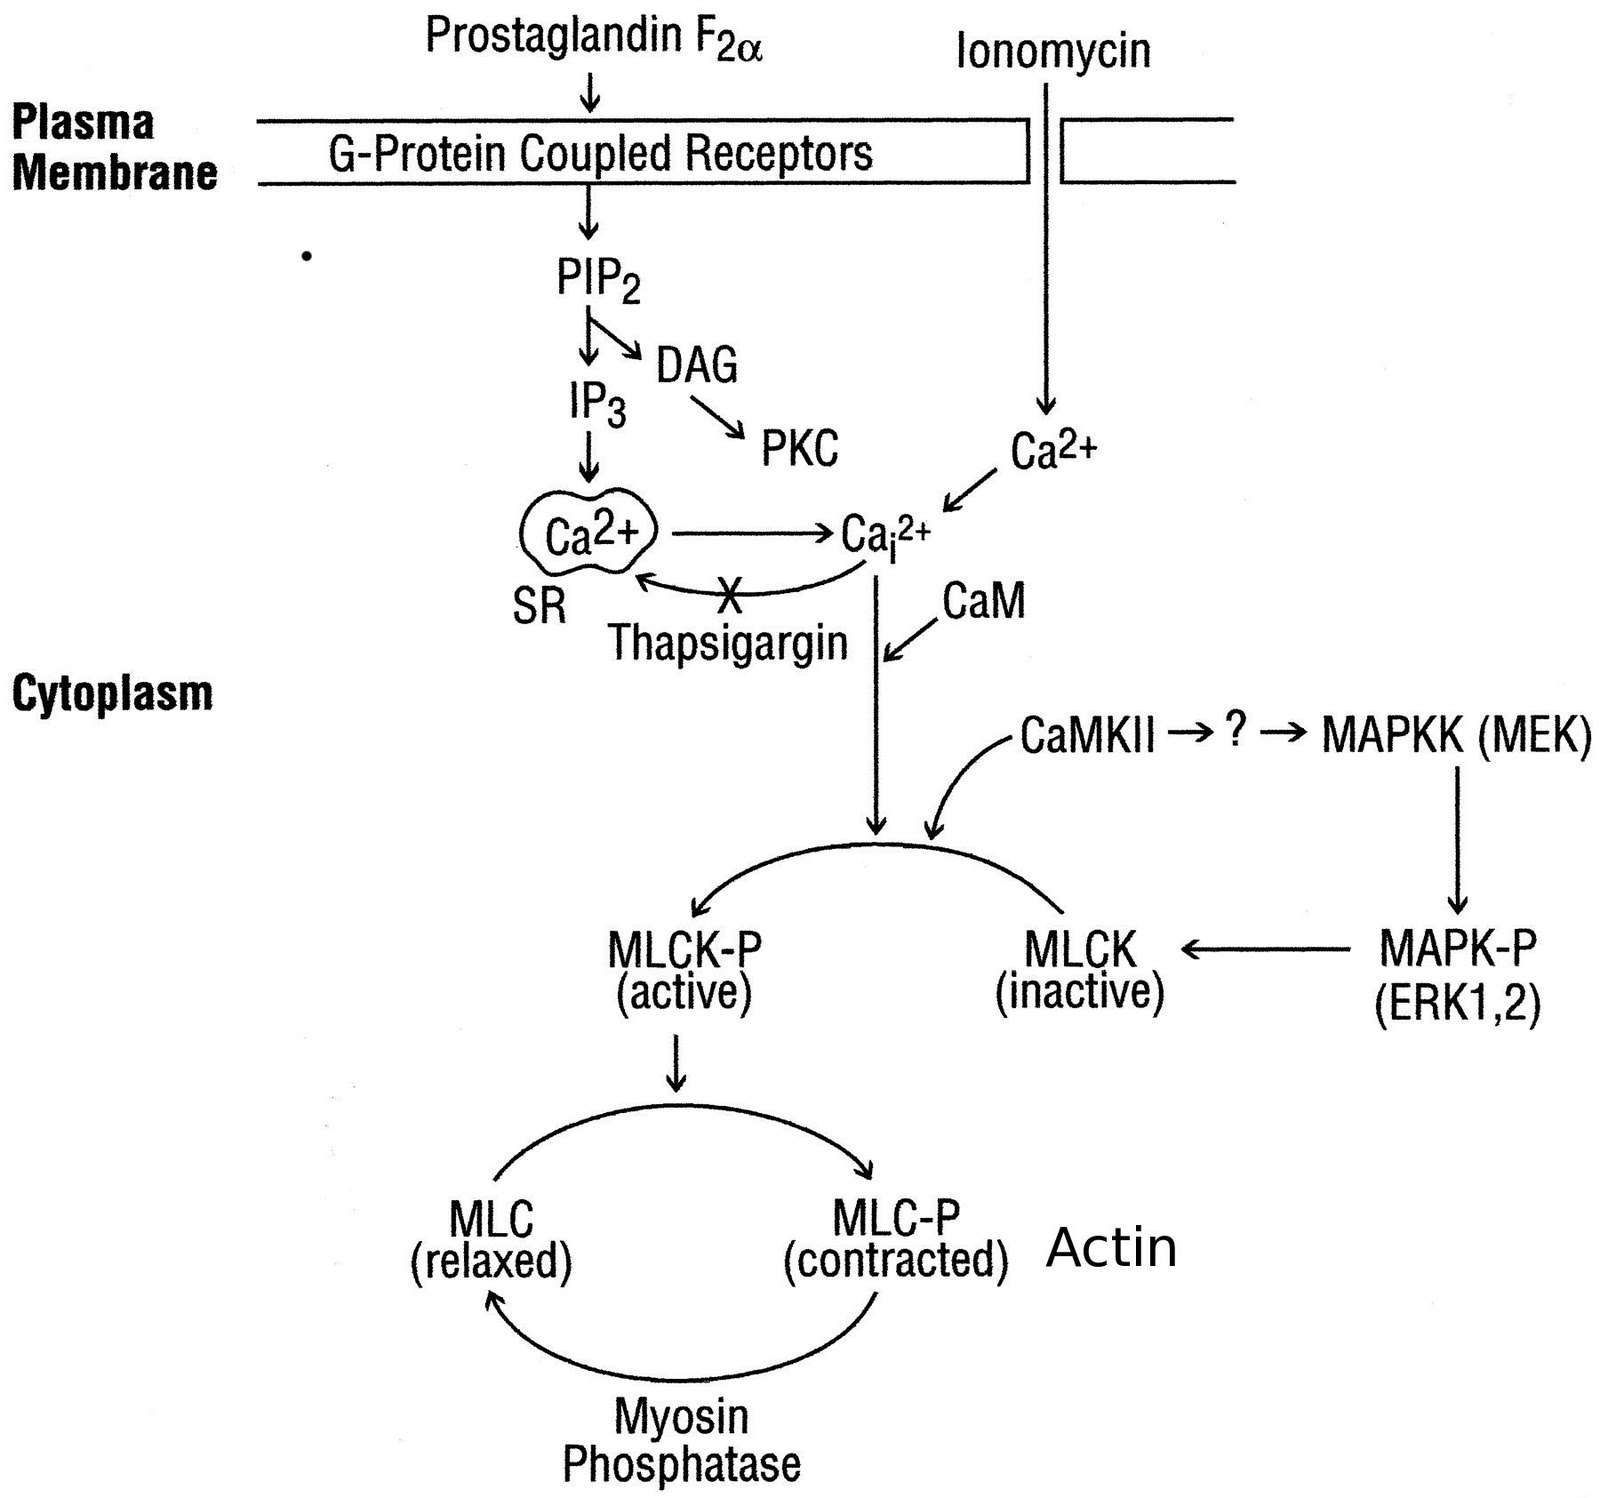 the miotic and mydriatic effect also found by nonadrenergic noncholinergic response of the iris has been found in recent years in neurotransmitter binding